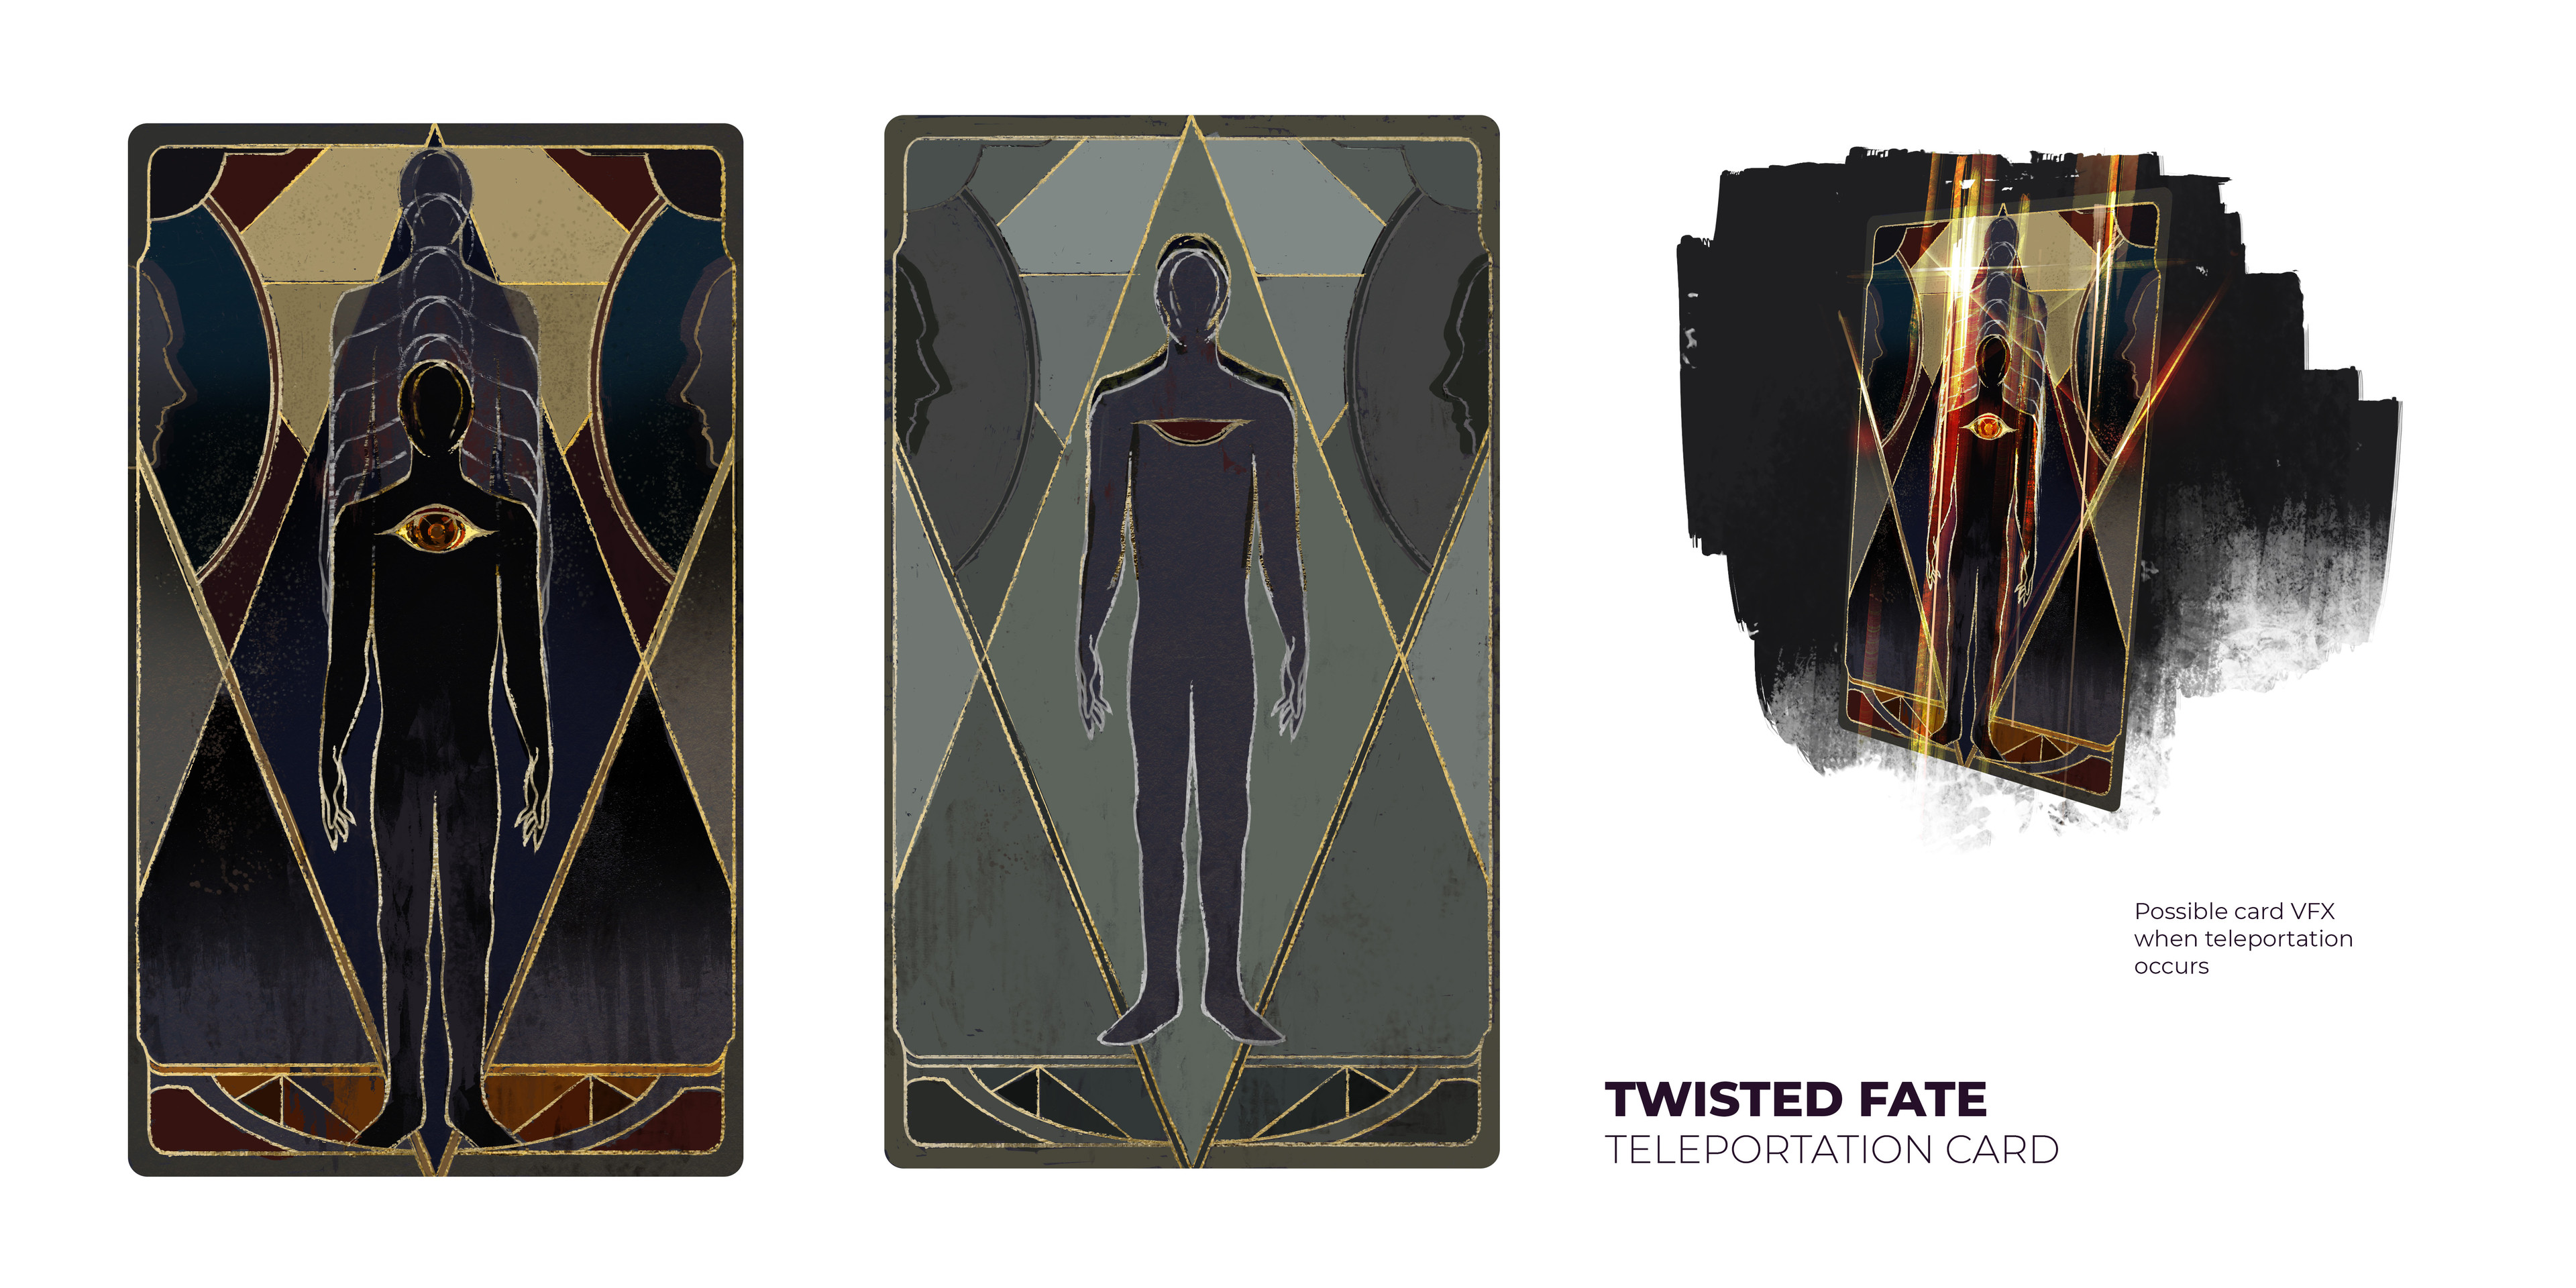 Twisted Fate's Teleporation Card with ON and OFF state. There's no parallel to this in-game, so the neutral color black was chosen.